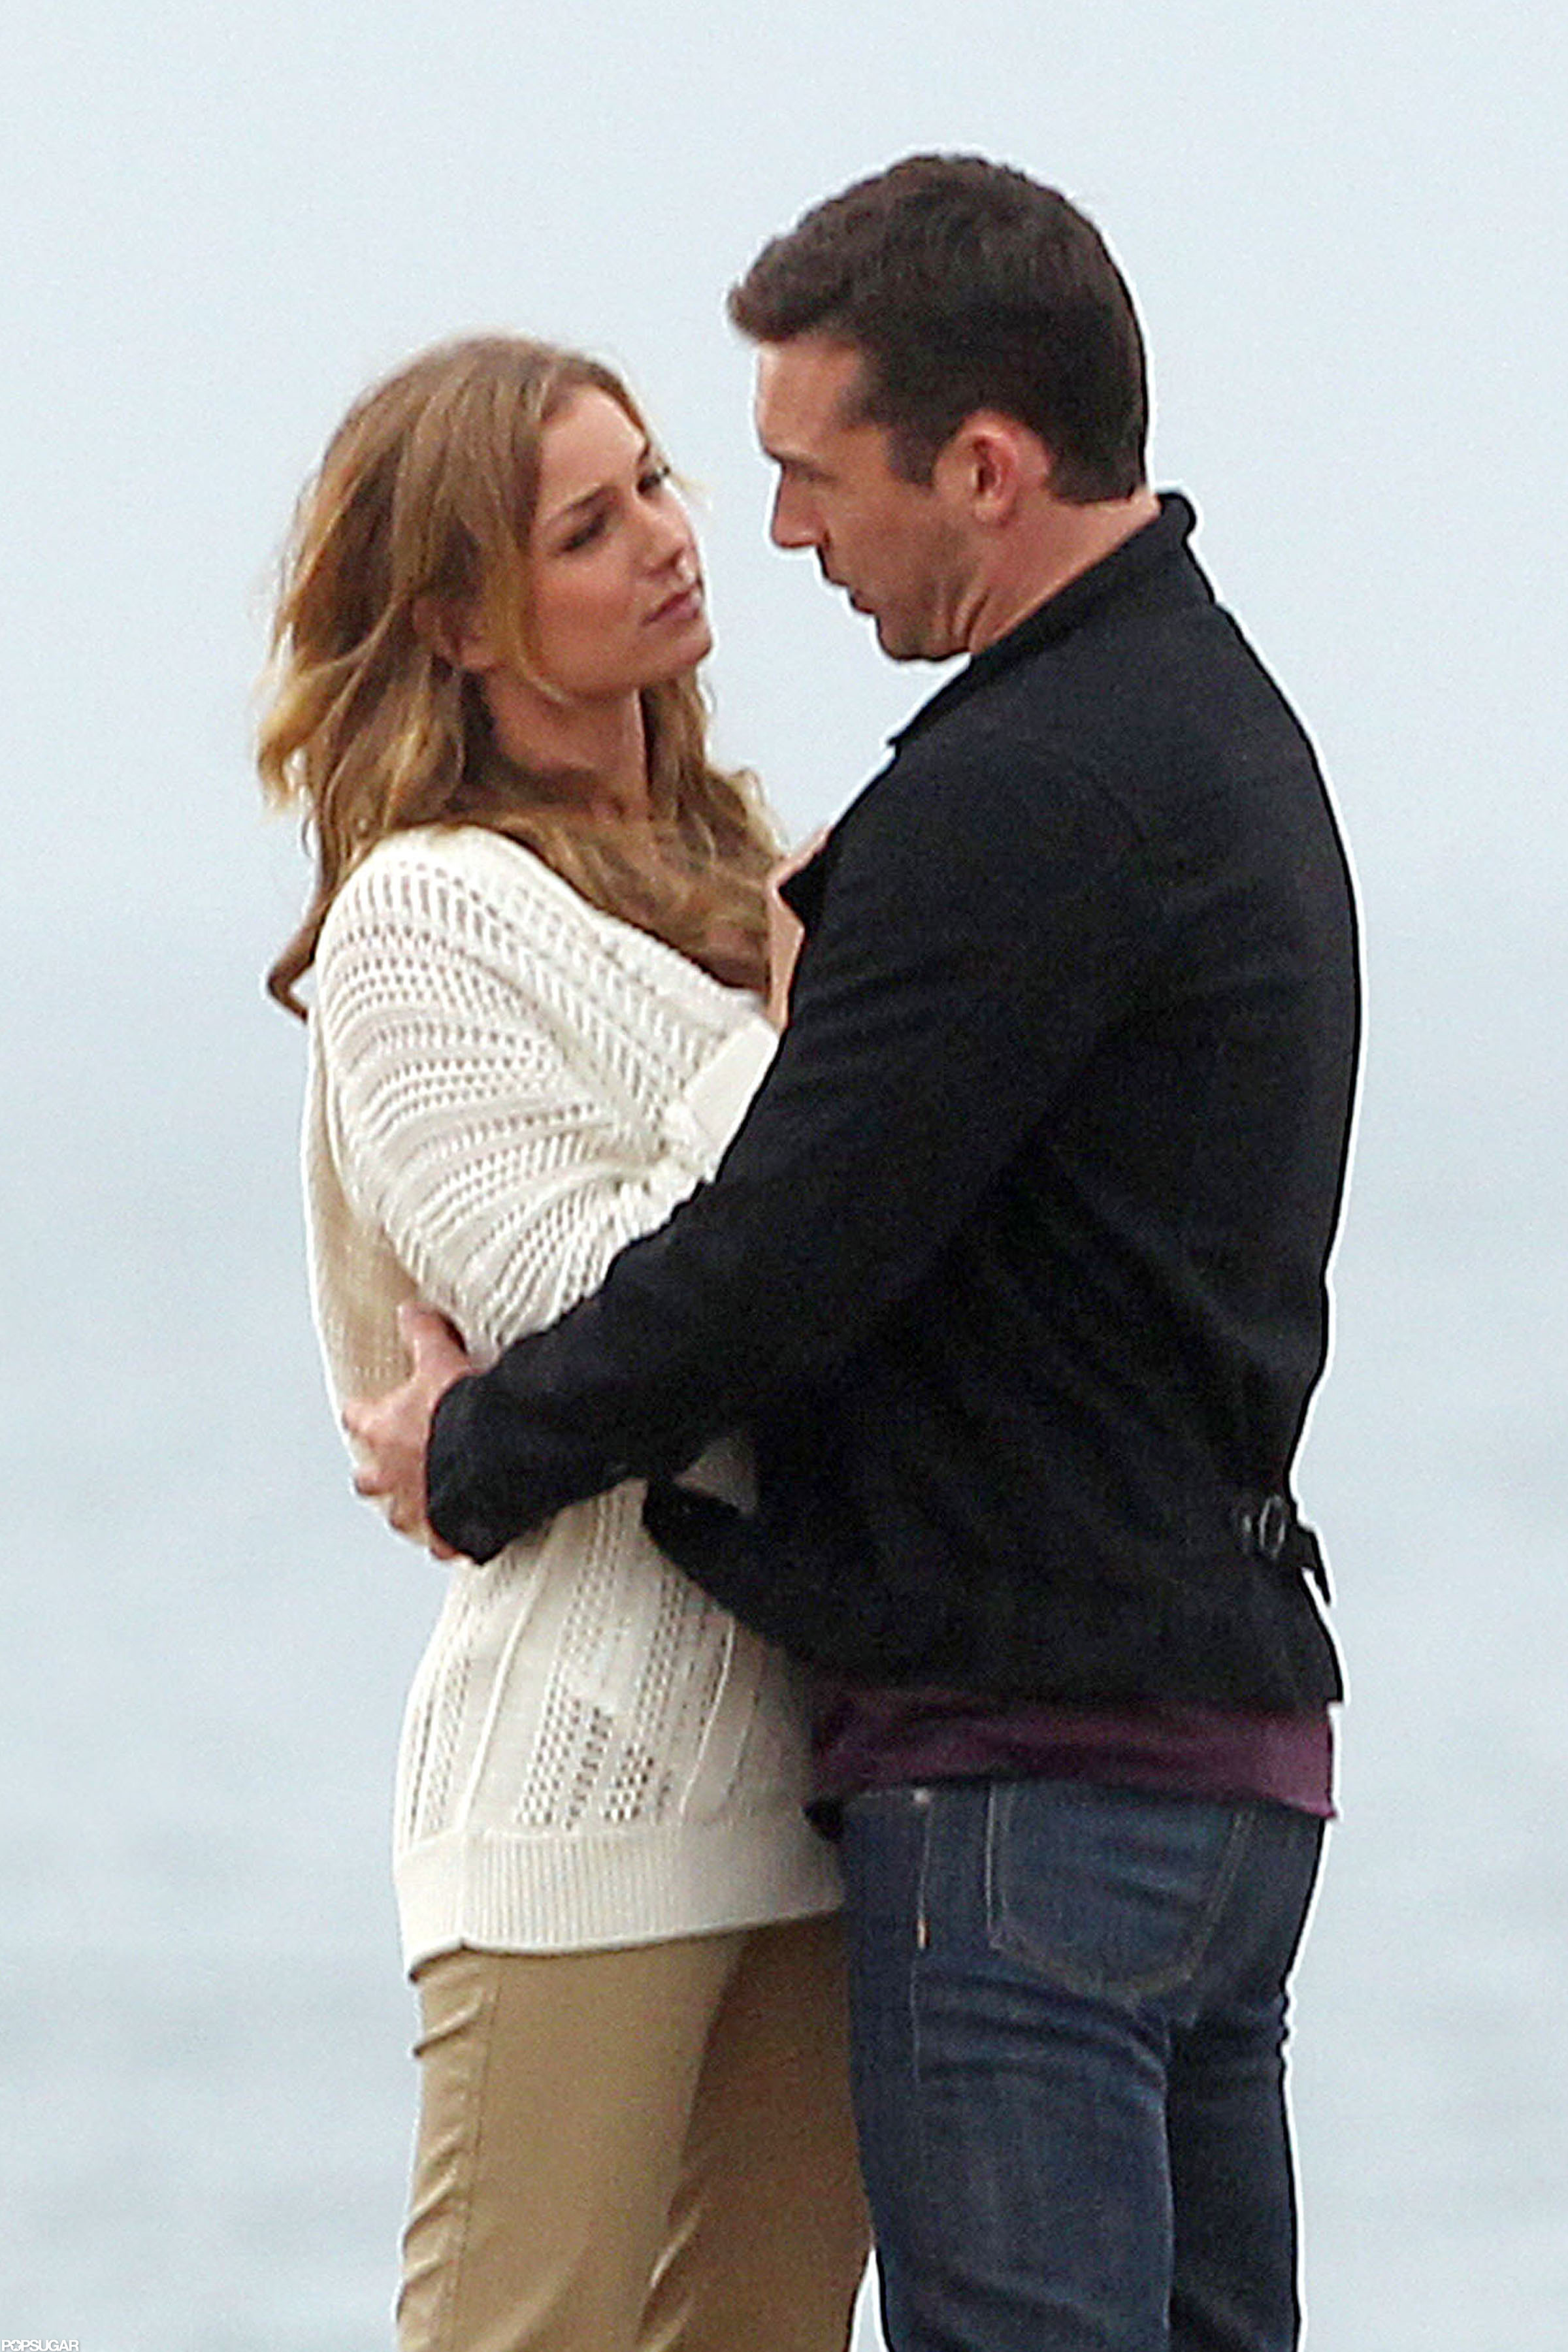 emily vancamp and costar barry sloane filmed a romantic